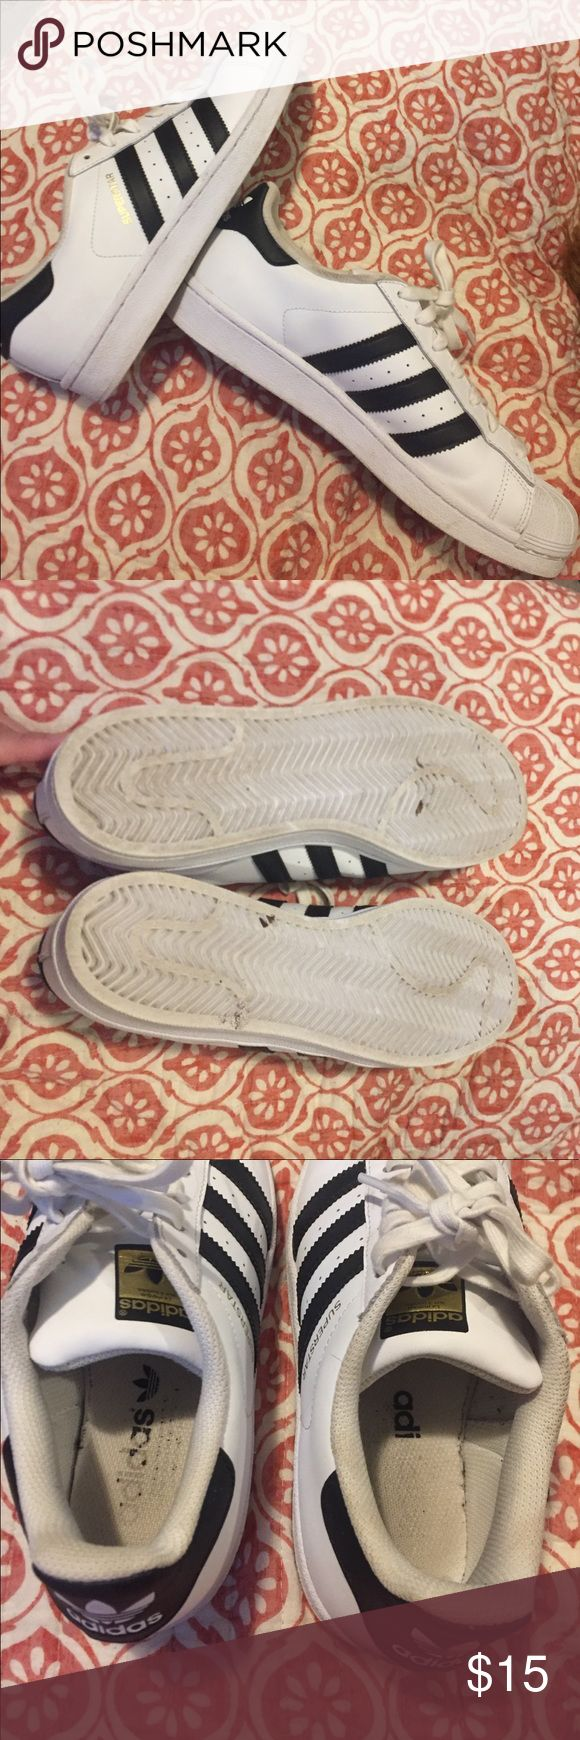 Adidas Shell Tops Slightly used Adidas Shell Tops. Size 8.5. Bottoms are in a really good condition. A couple of minor scratches. Perfect for back to school! adidas Shoes Athletic Shoes